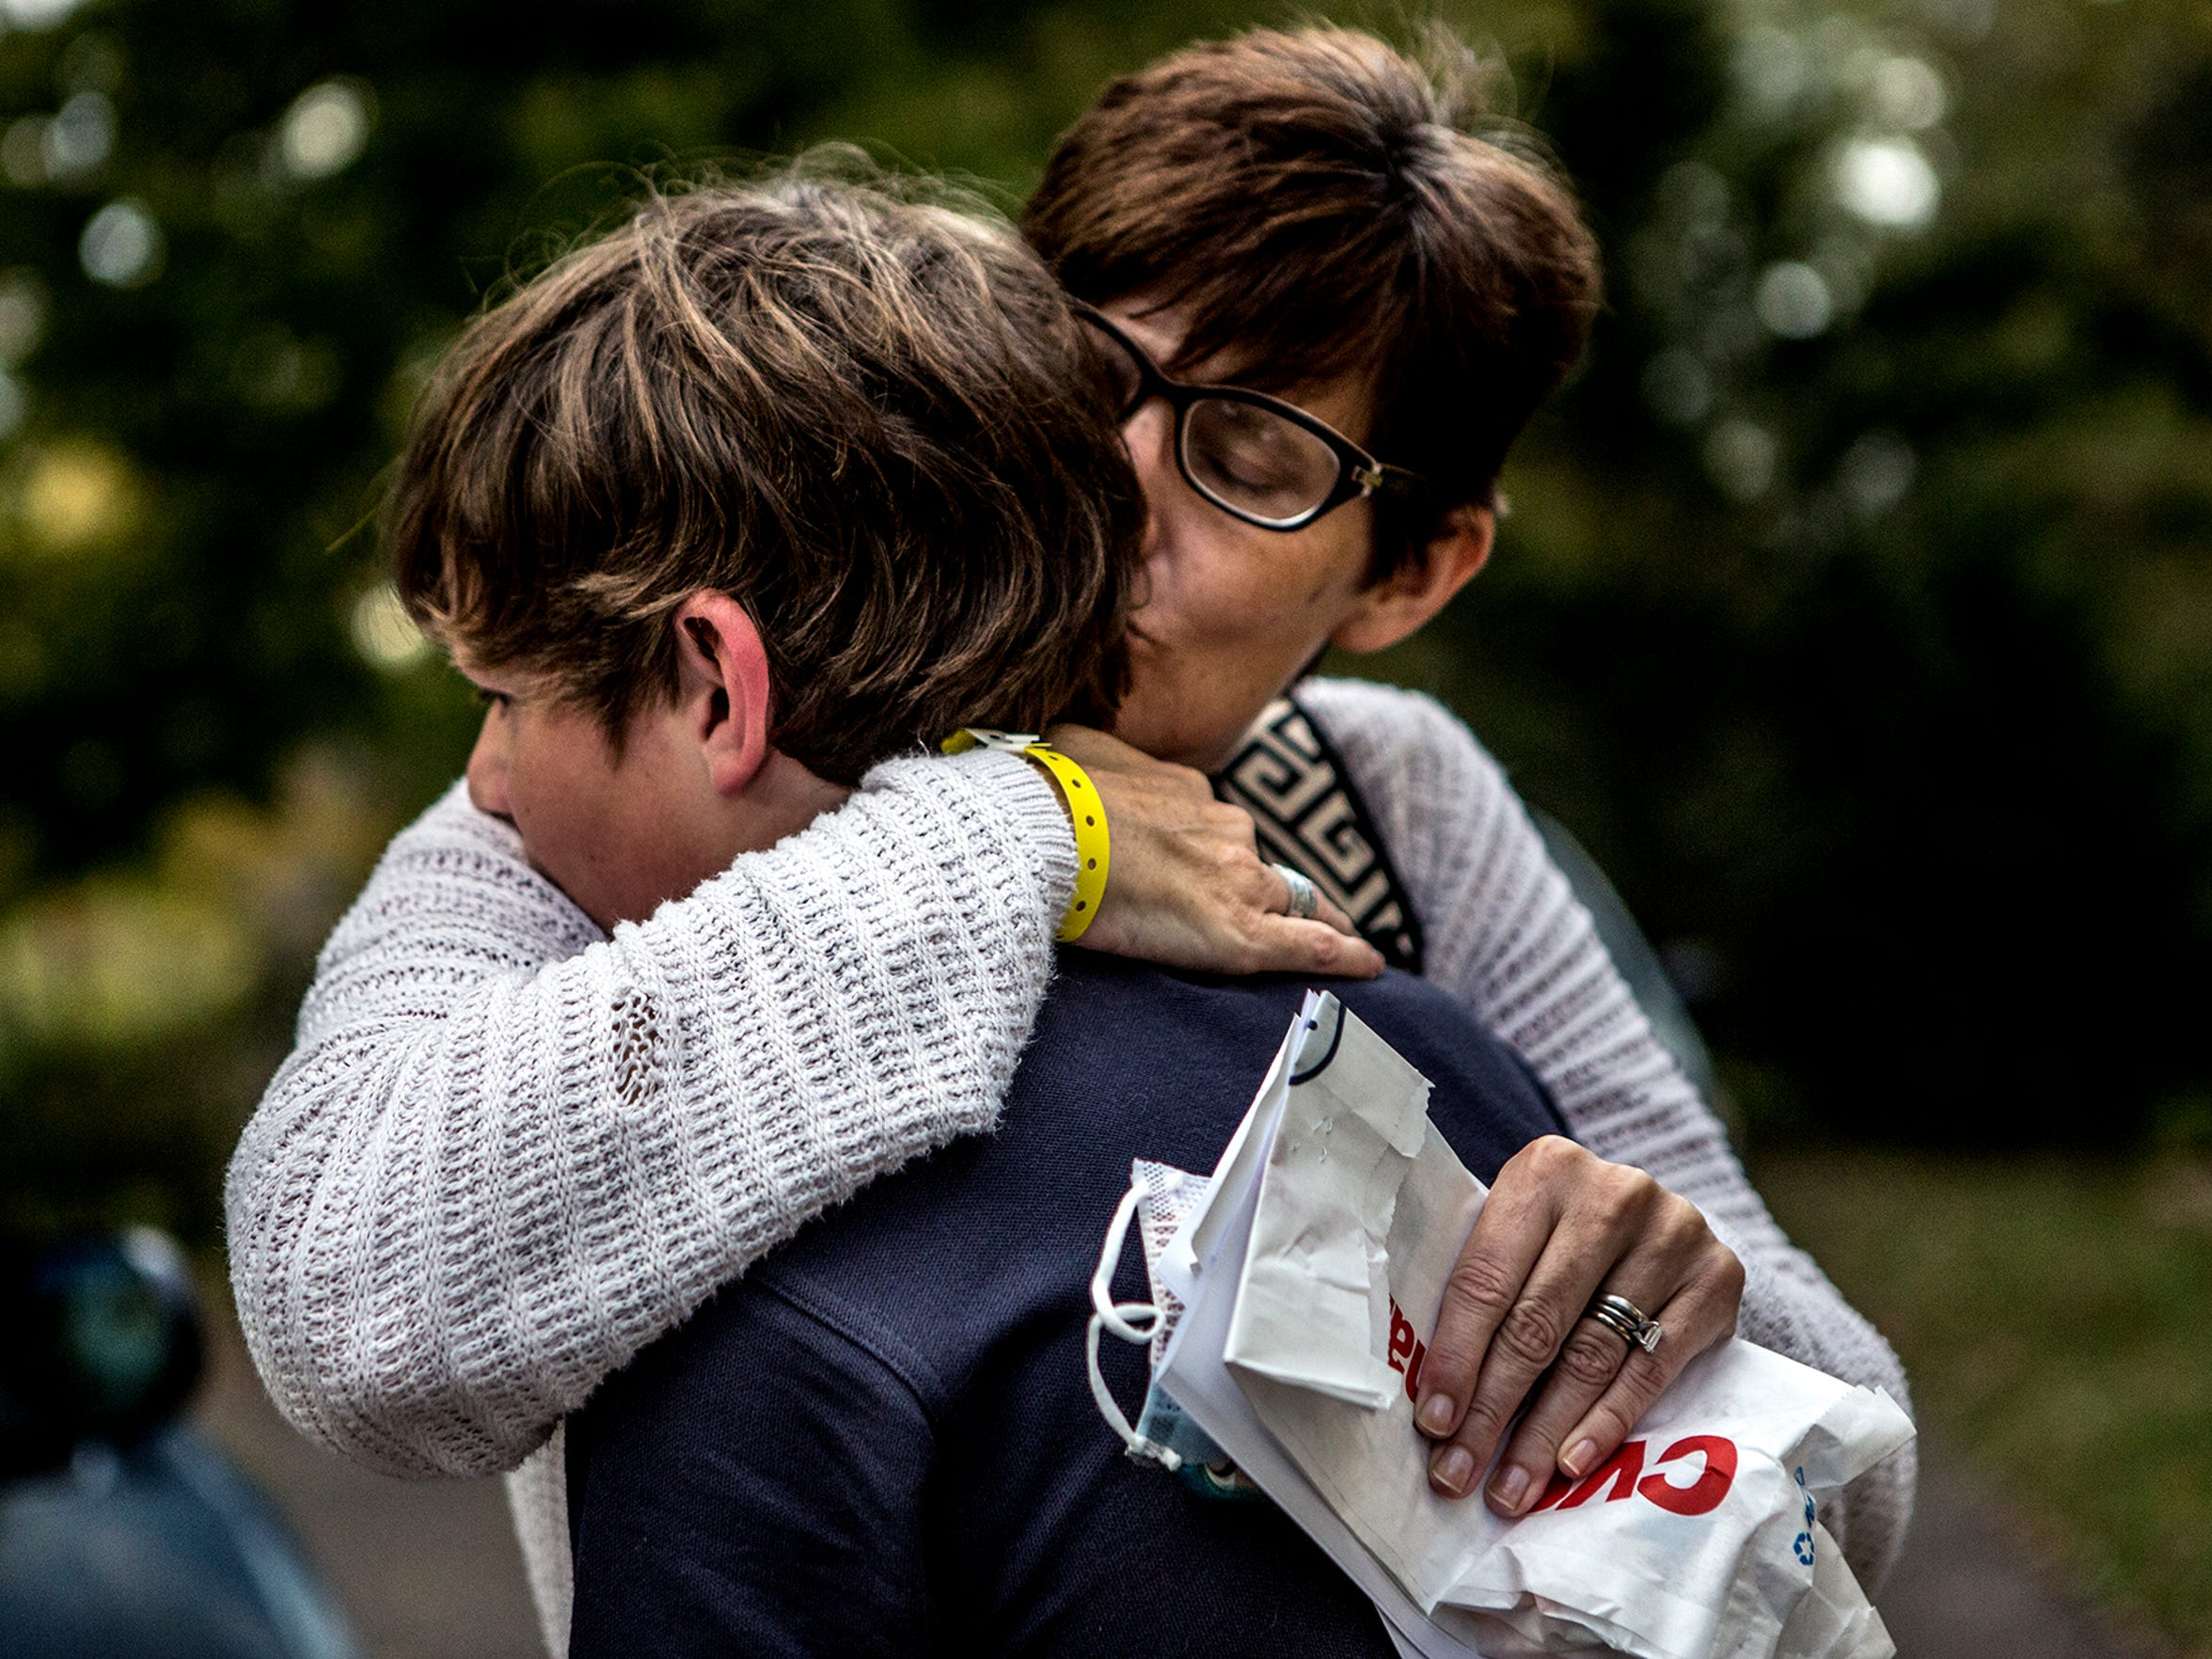 Noah ran out to see his mom when she came home from the hospital, and Stacey greeted him with a hug and kiss, saying how much she had missed him. Stacey went to the emergency room when she spiked a fever, and was kept there for three days.